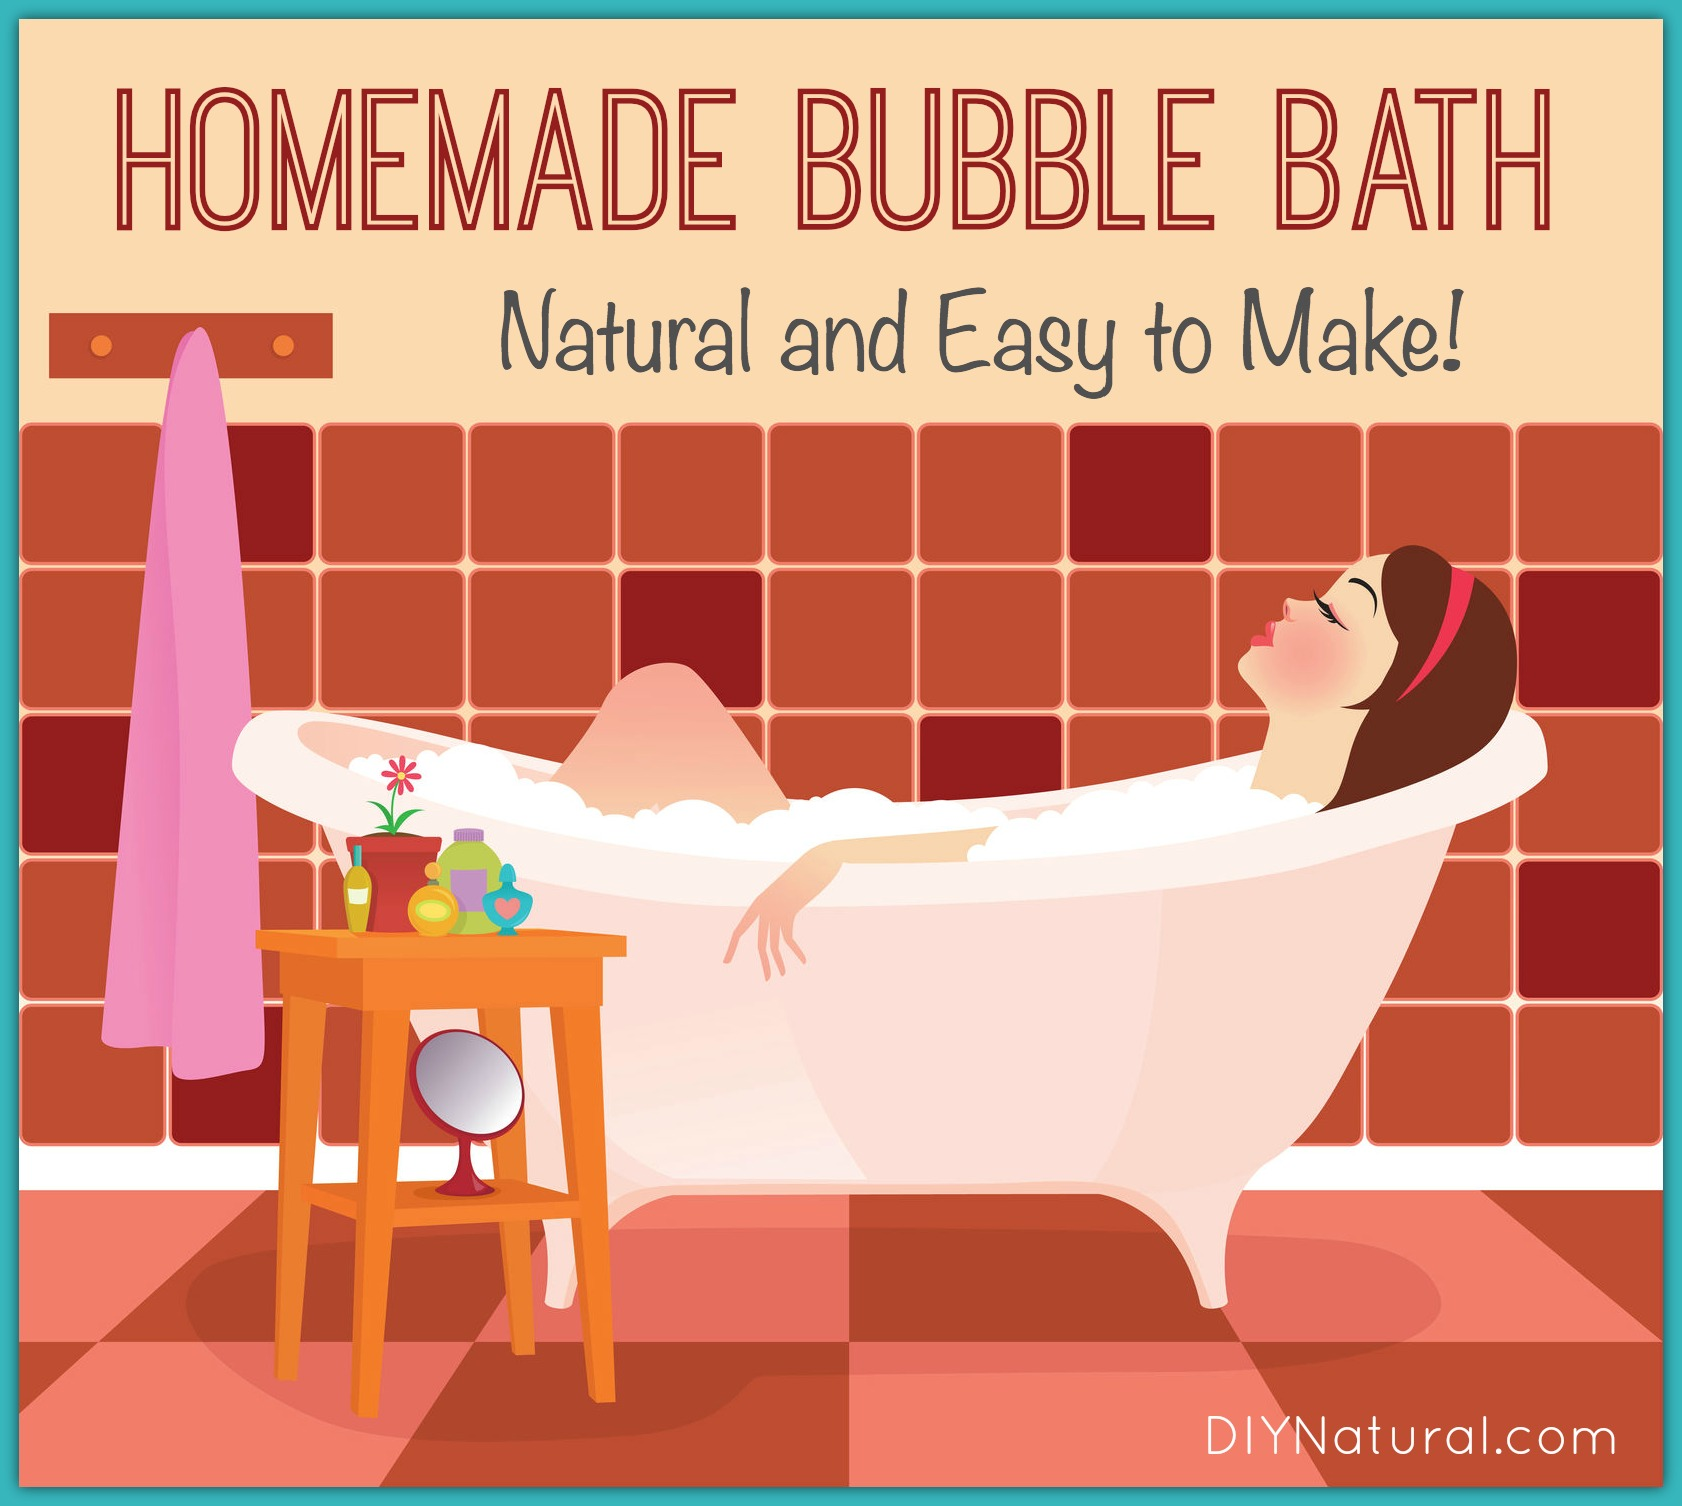 Diy Soap Without Glycerin Homemade Bubble Bath A Bubble Bath Recipe Without All The